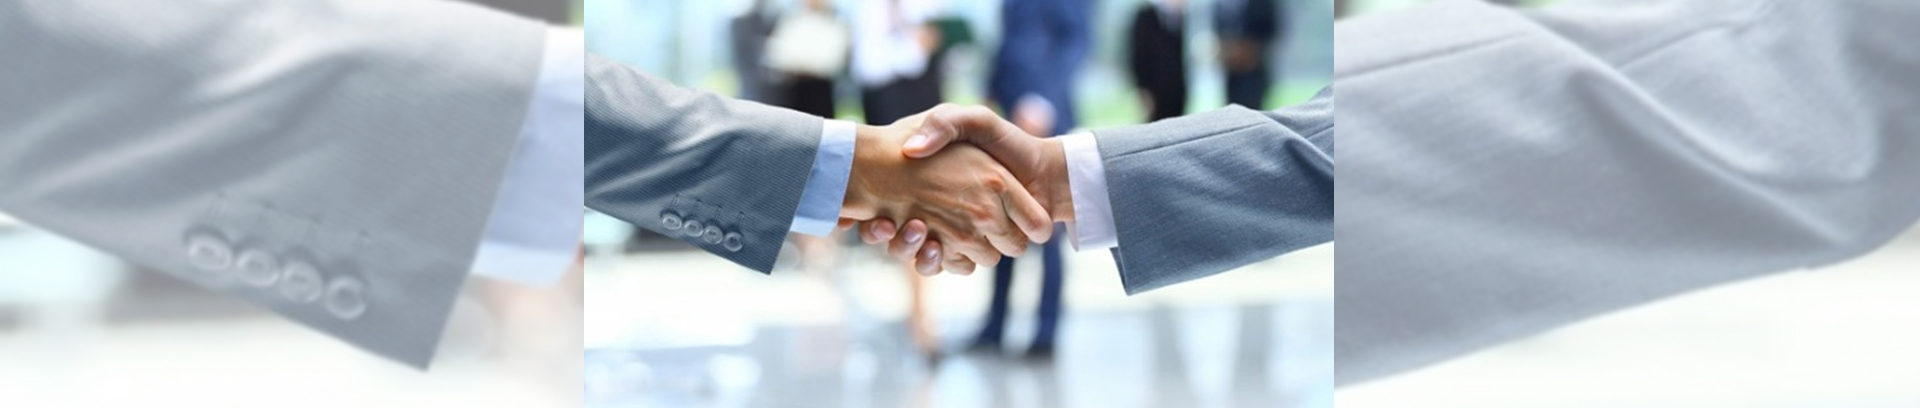 partners shake hands in the medical business